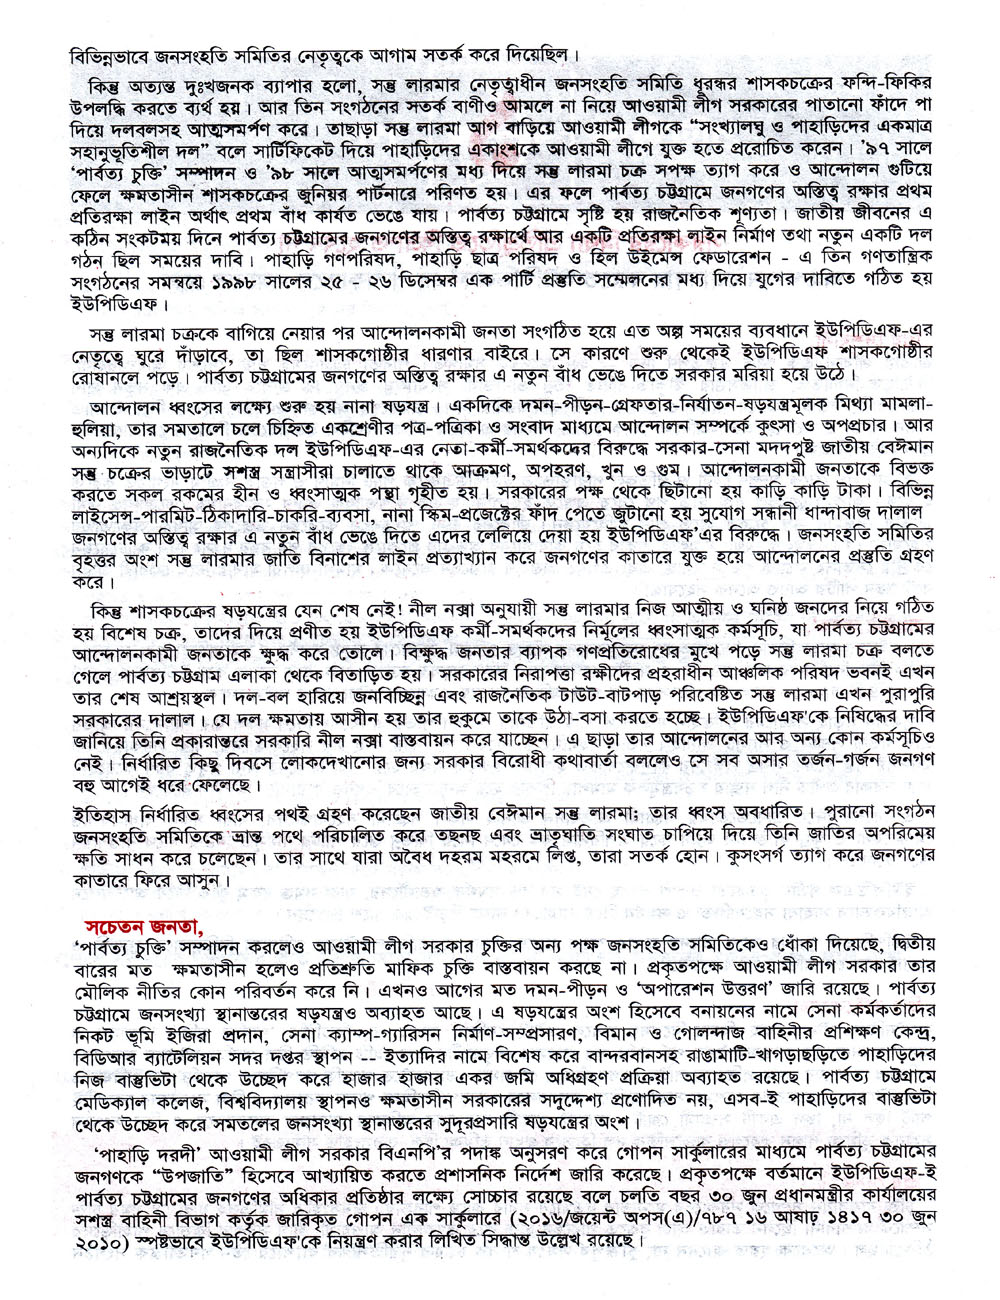 11. Leaflet on 12th founding anniversary, page-2